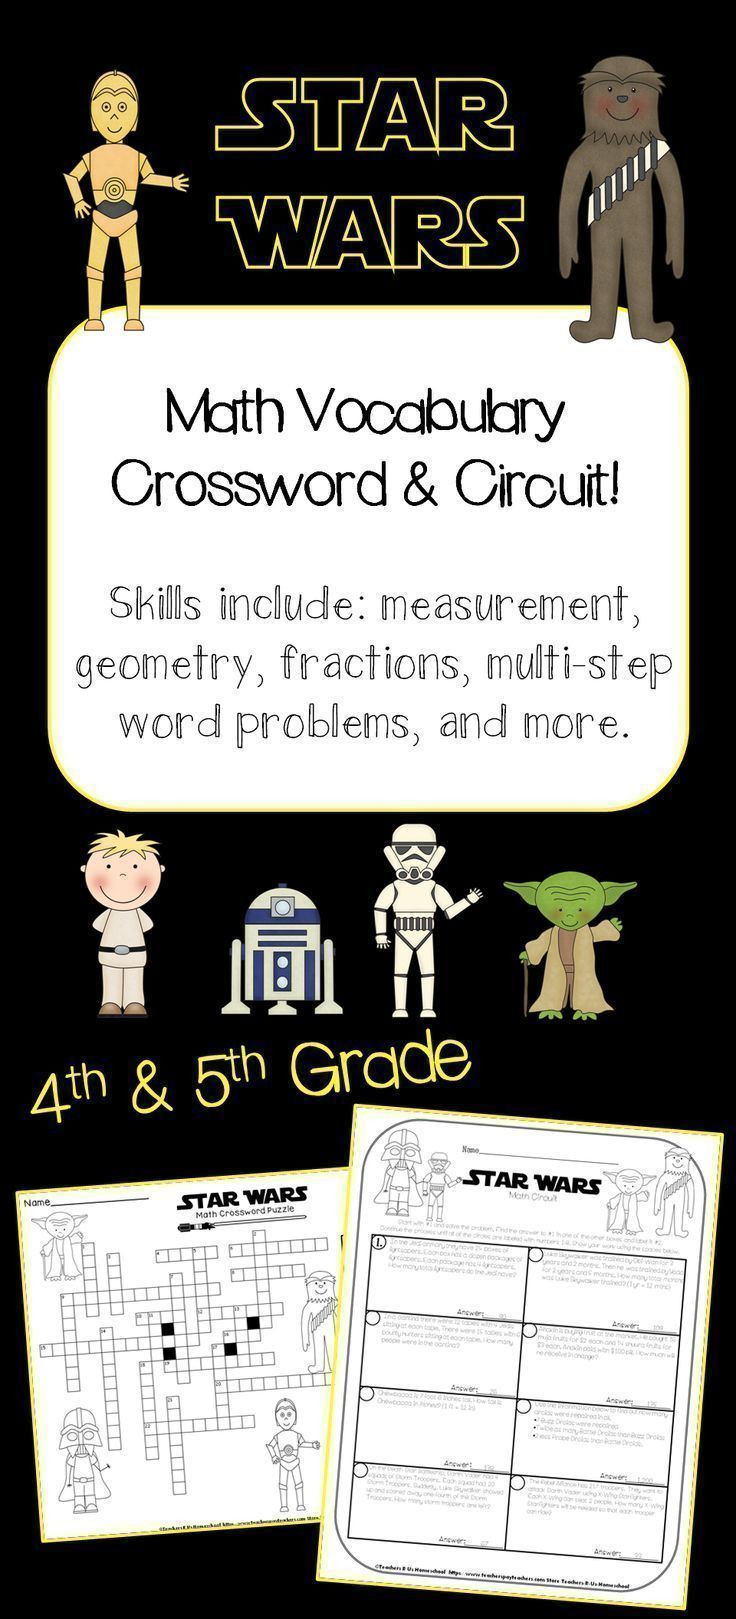 Star Wars Maths Worksheets May 4th is Star Wars Celebration Day these Math Activities